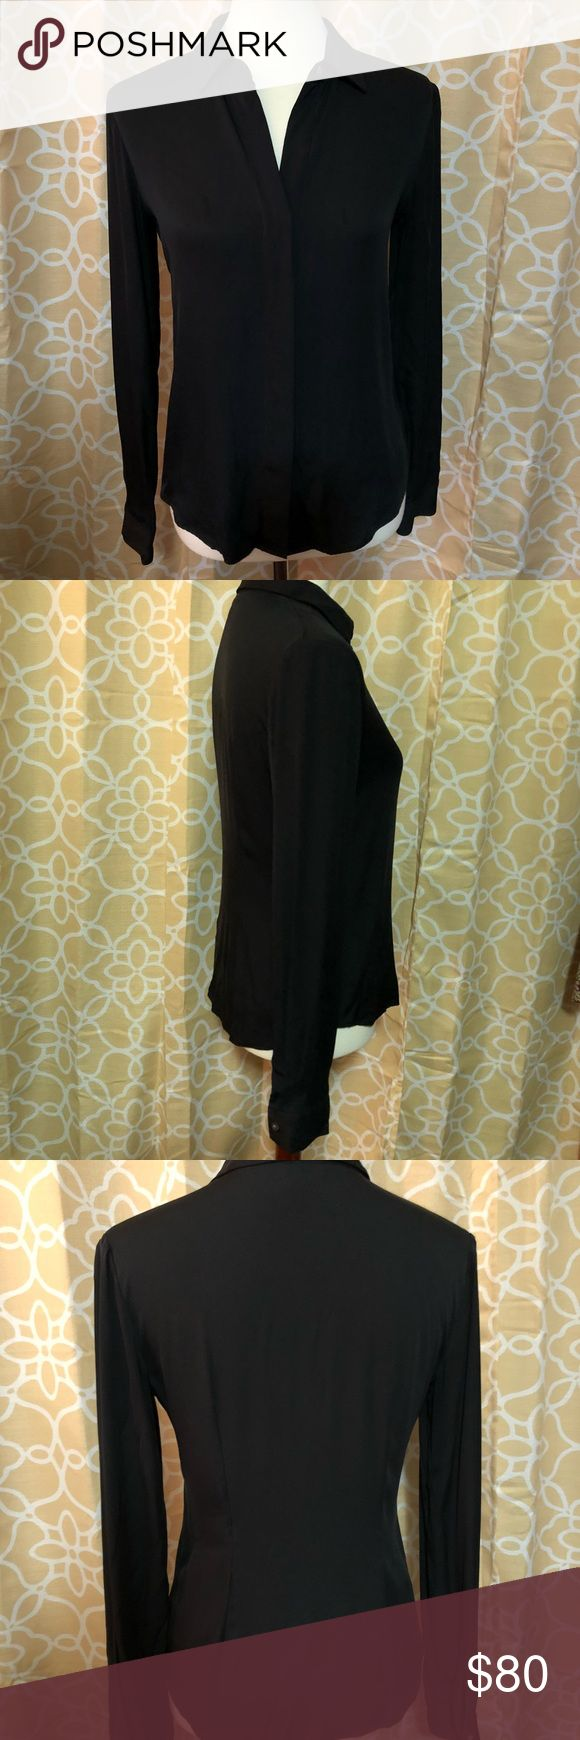 "Theory Black Silk Blend Shirt Luxe on fleek!   Theory long sleeve black silk shirt OMG.  It's gorgeous ladies & will make you feel gorgeous when you wear it styled with a pencil skirt and heels, you'll demand the floor without saying a word.  EUC Size P/TP (Mannequin measures 34""/26""/35"") Theory Tops Button Down Shirts"